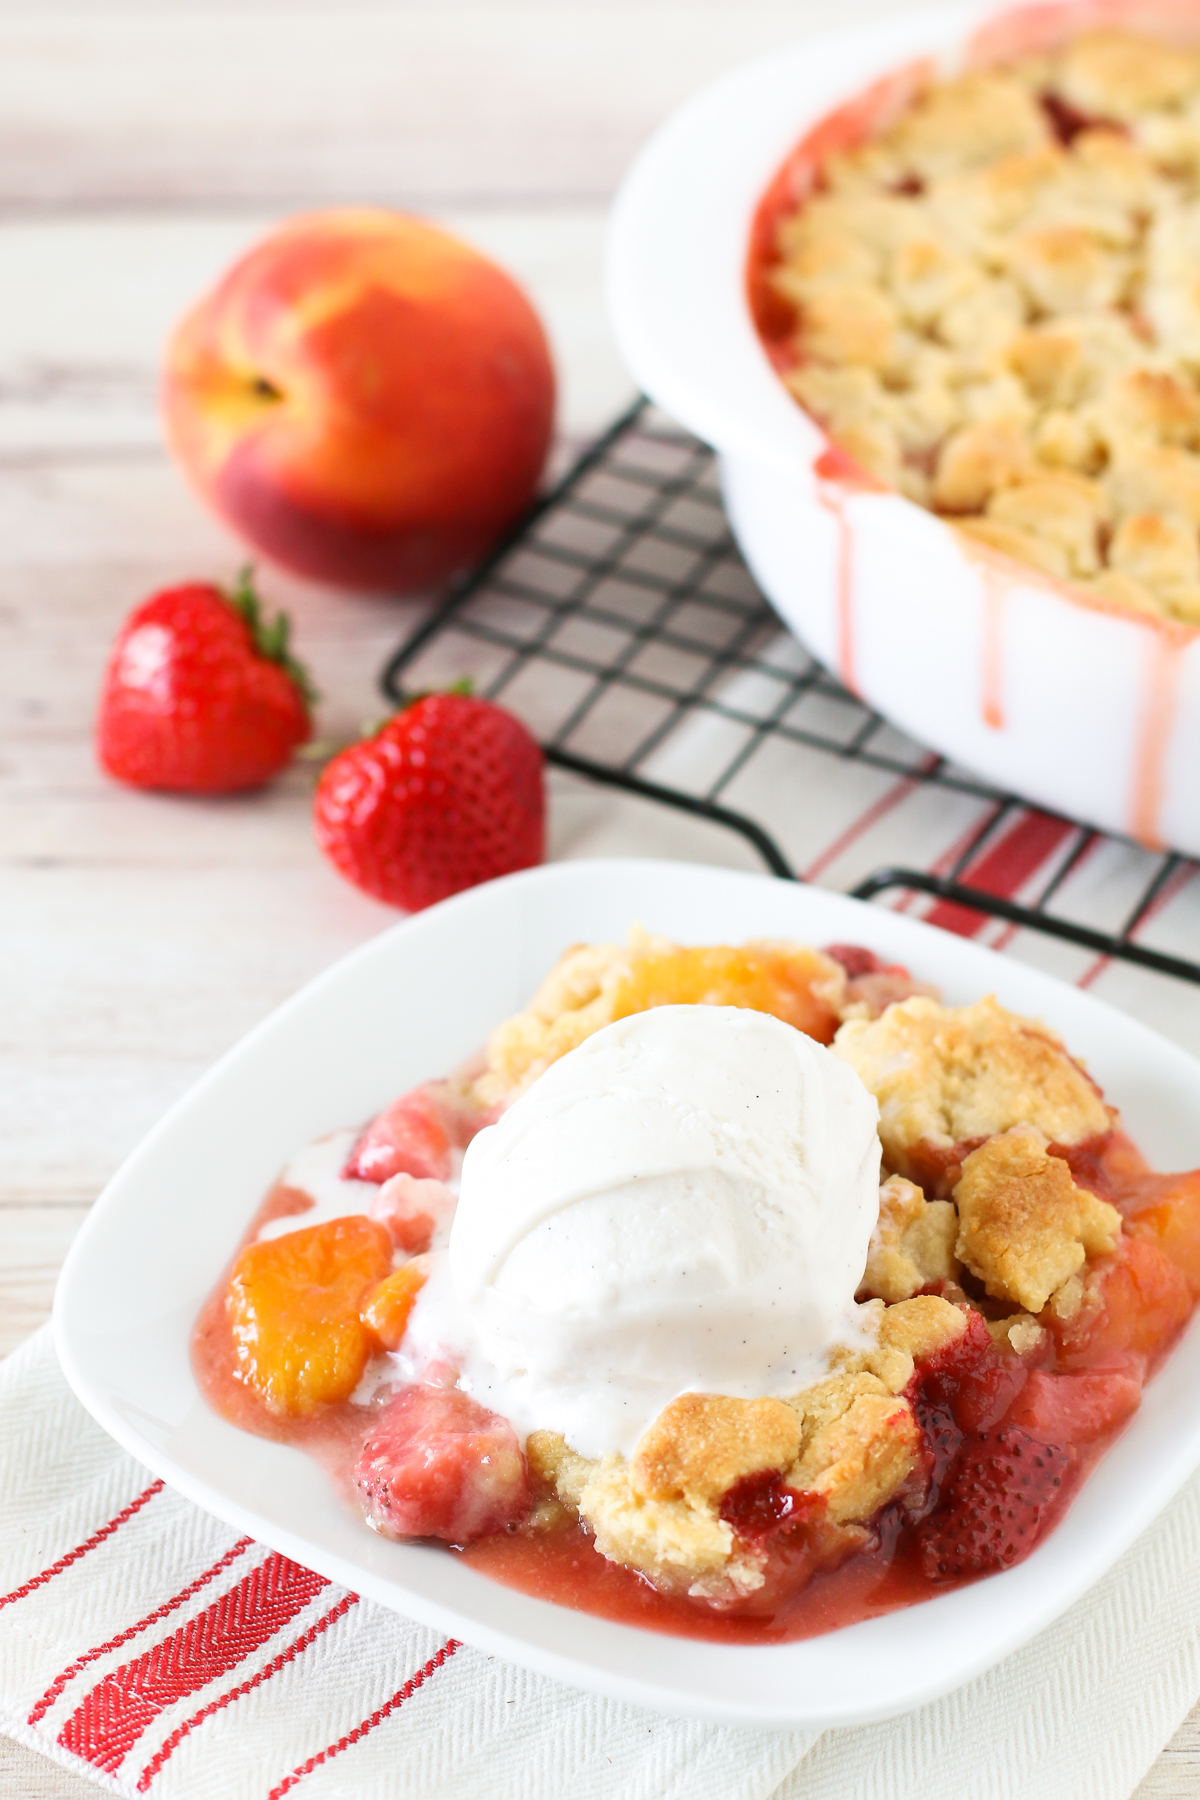 Grain Free Vegan Strawberry Peach Crisp. Golden grain free crisp topping over sweet, juicy strawberries and peaches.